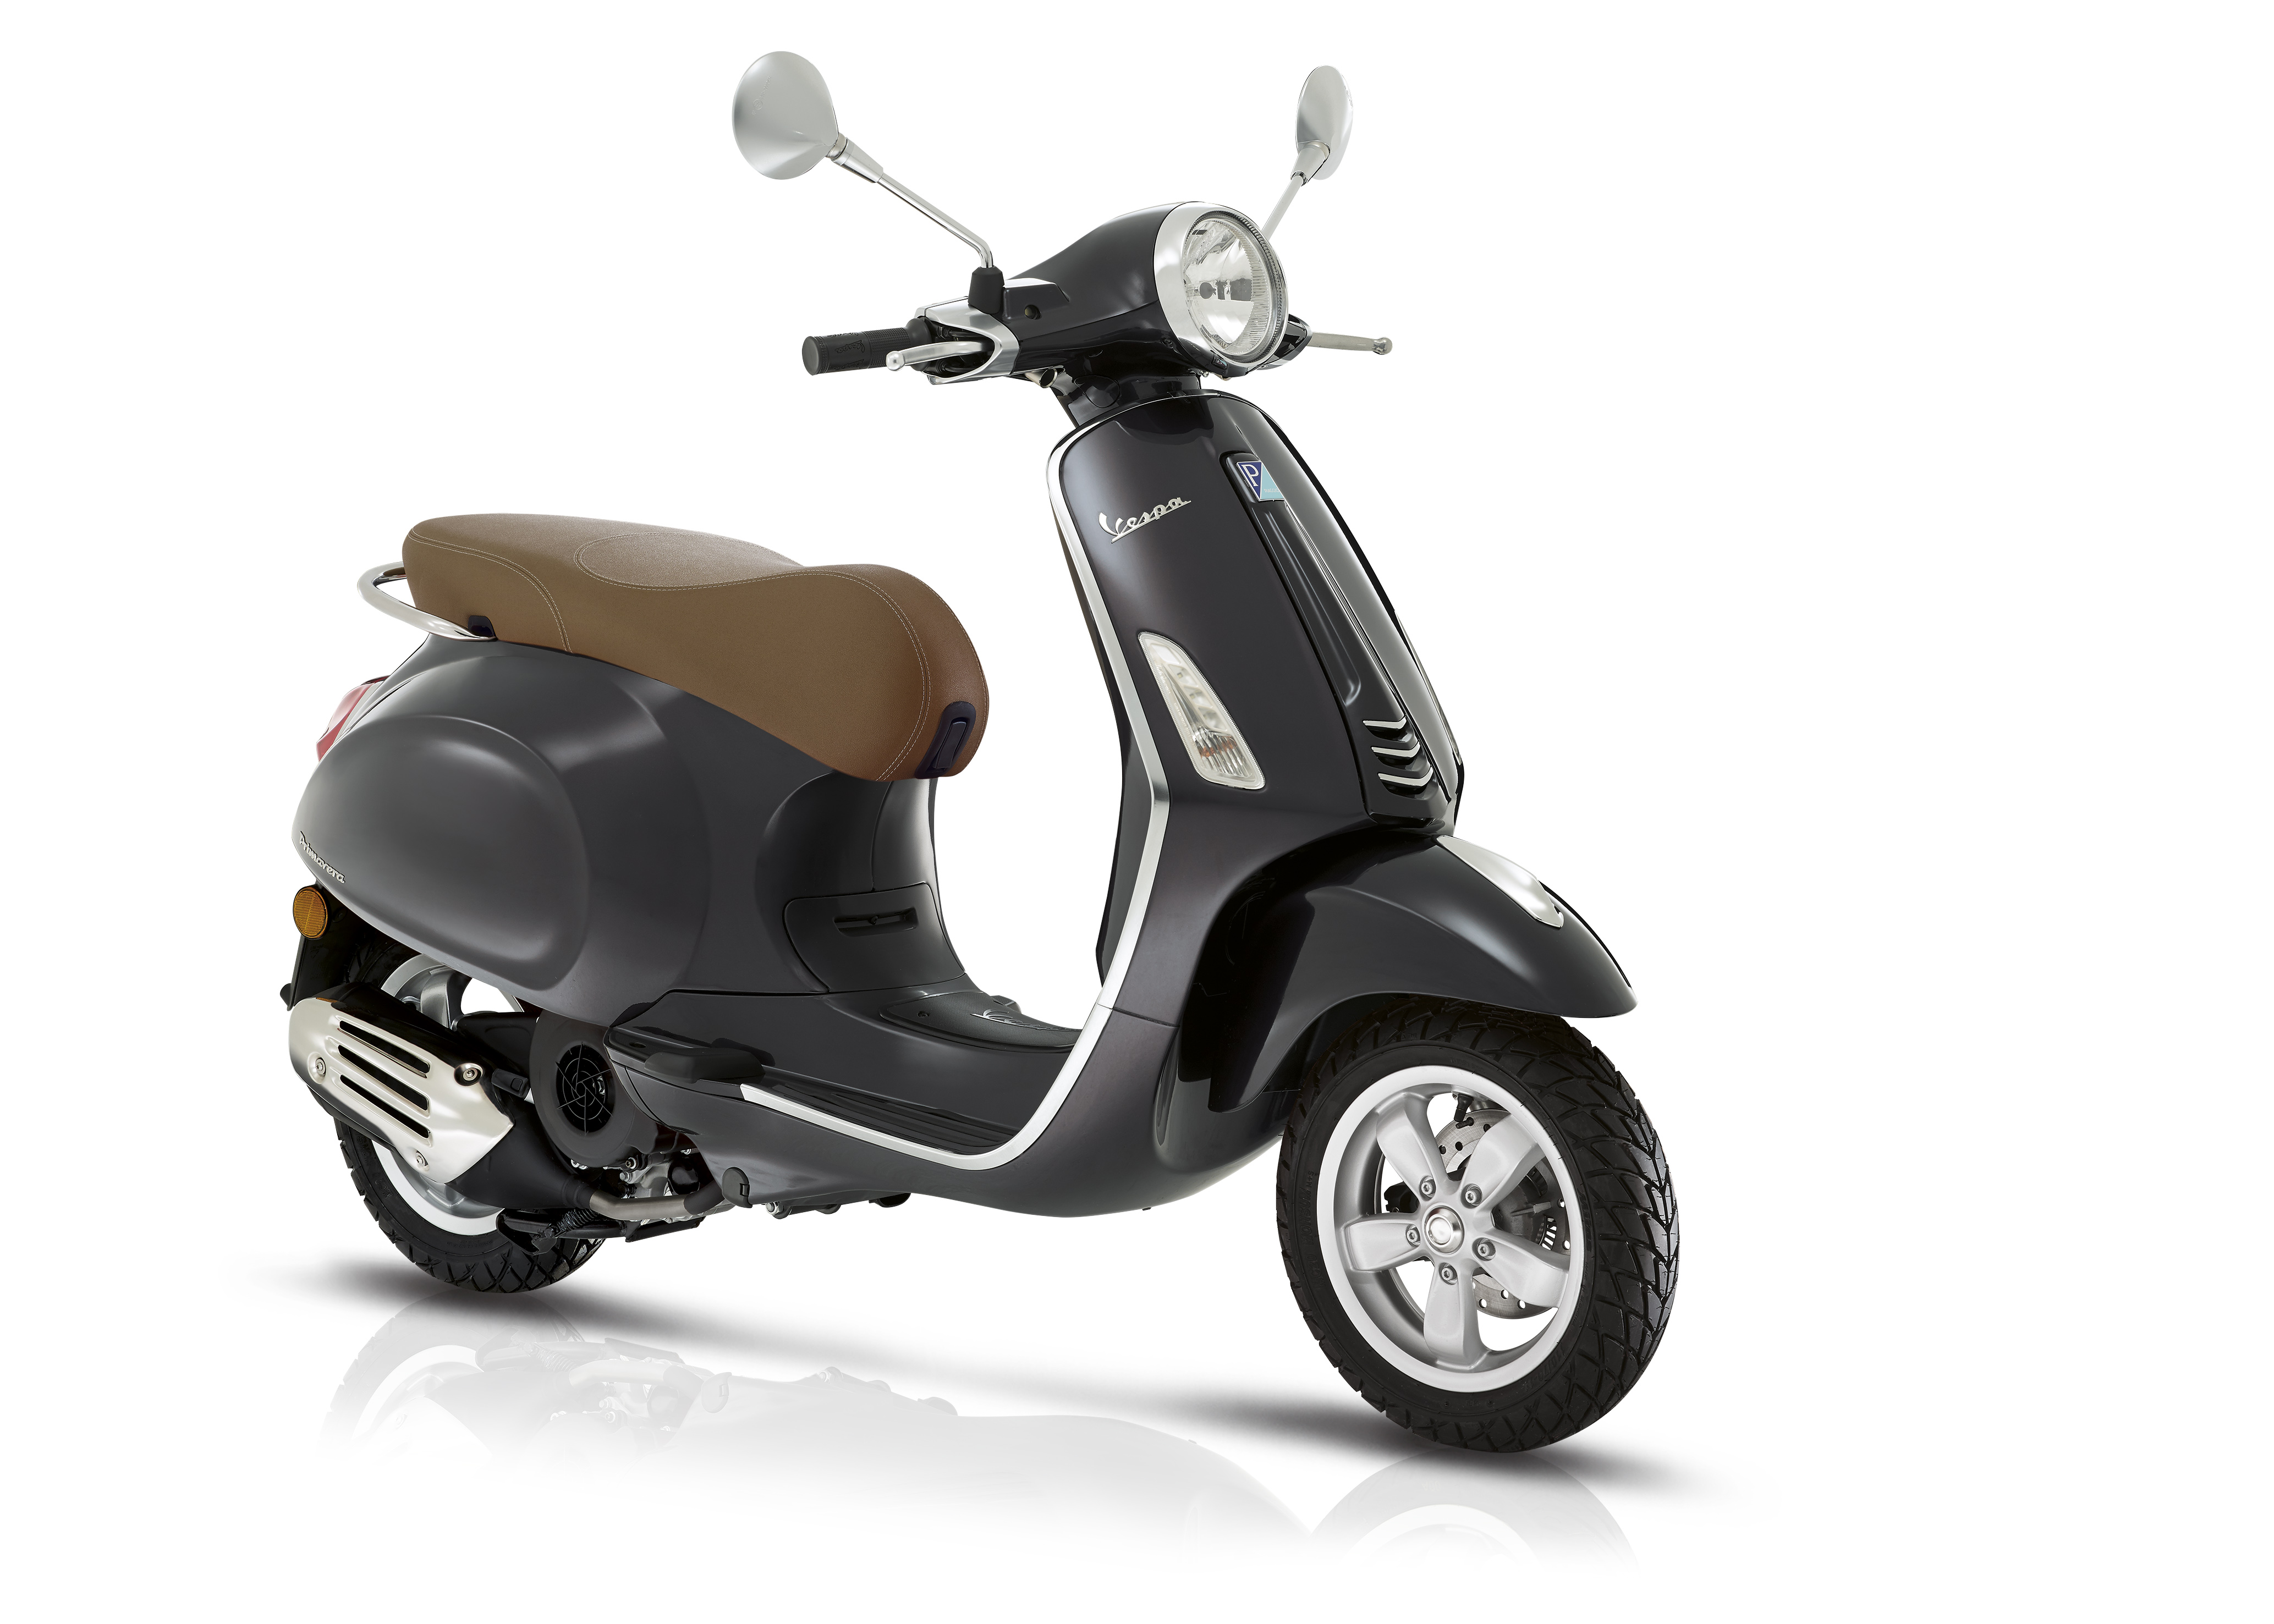 Suspensions for Vespa Primavera